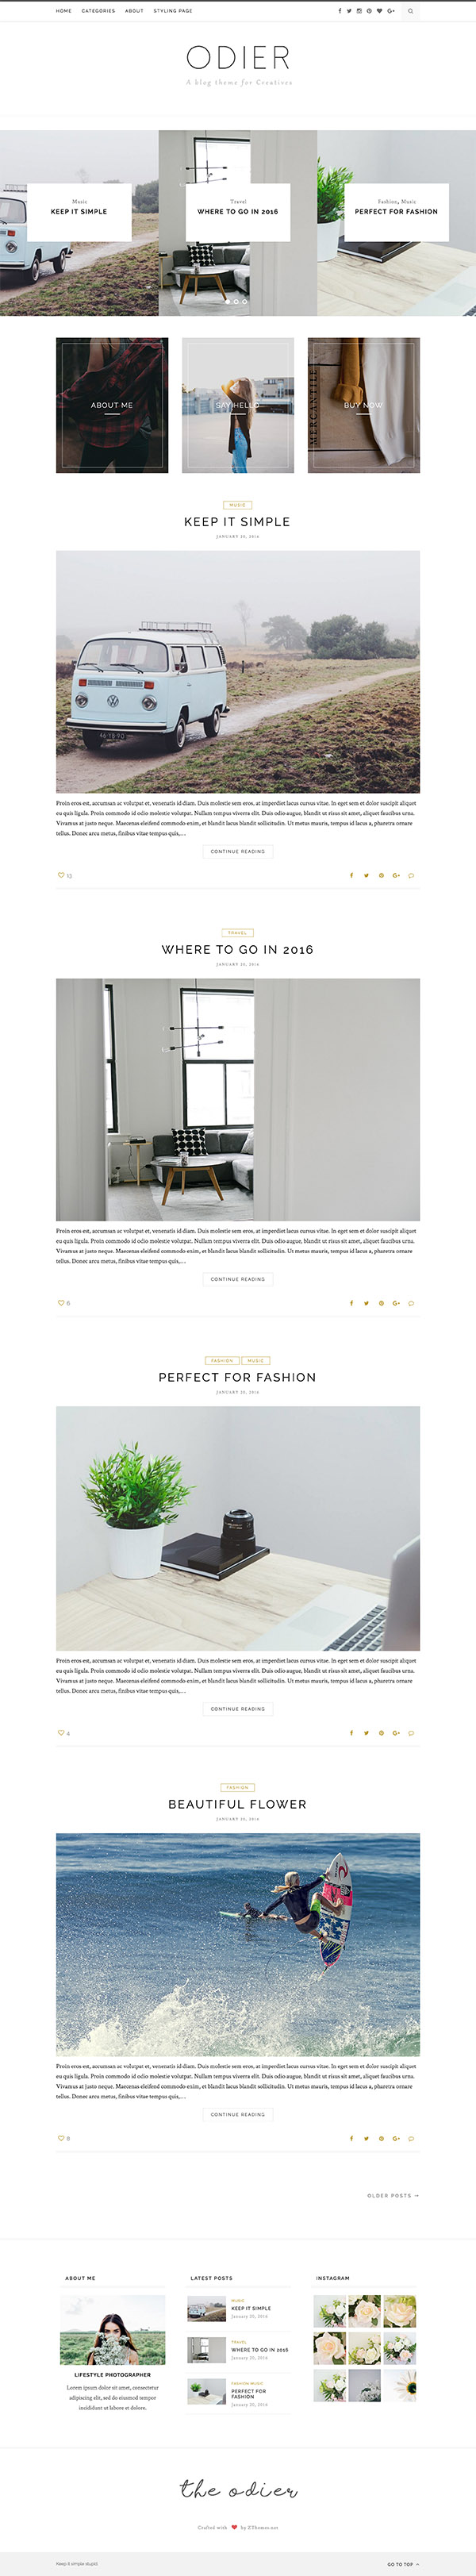 03 Odier - Simple & Elegant WordPress Blog Theme